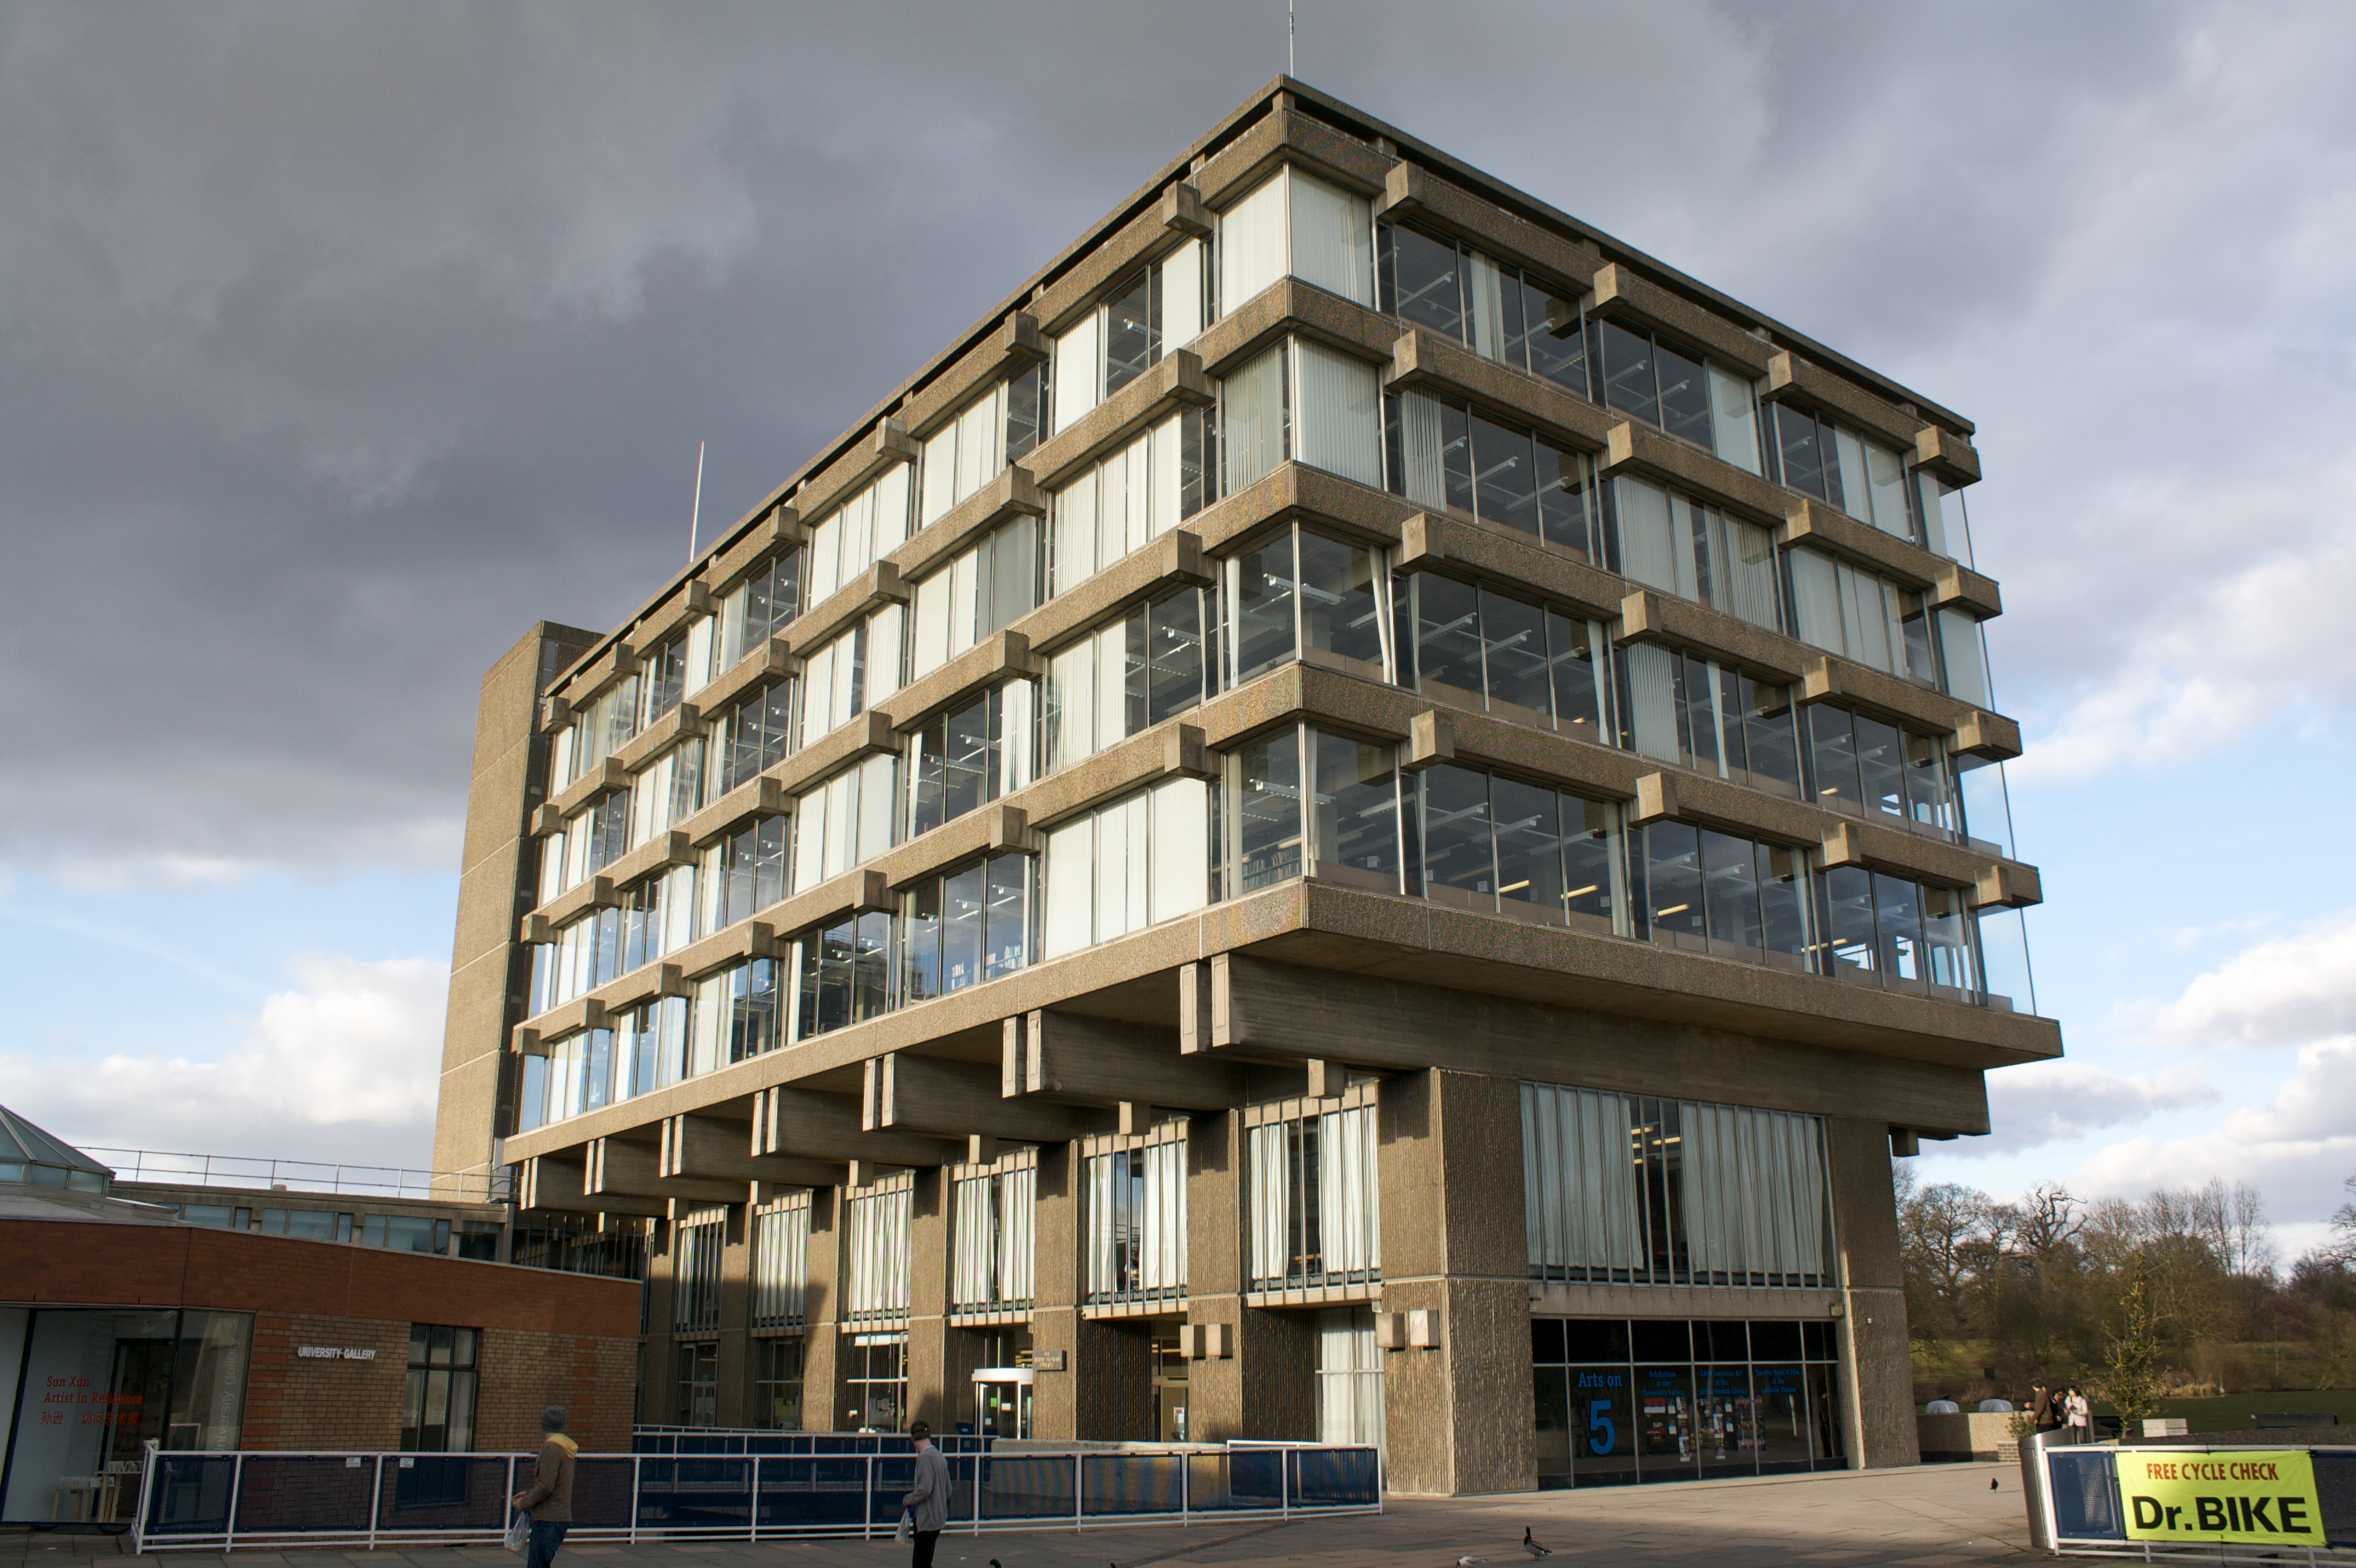 image of University of Essex